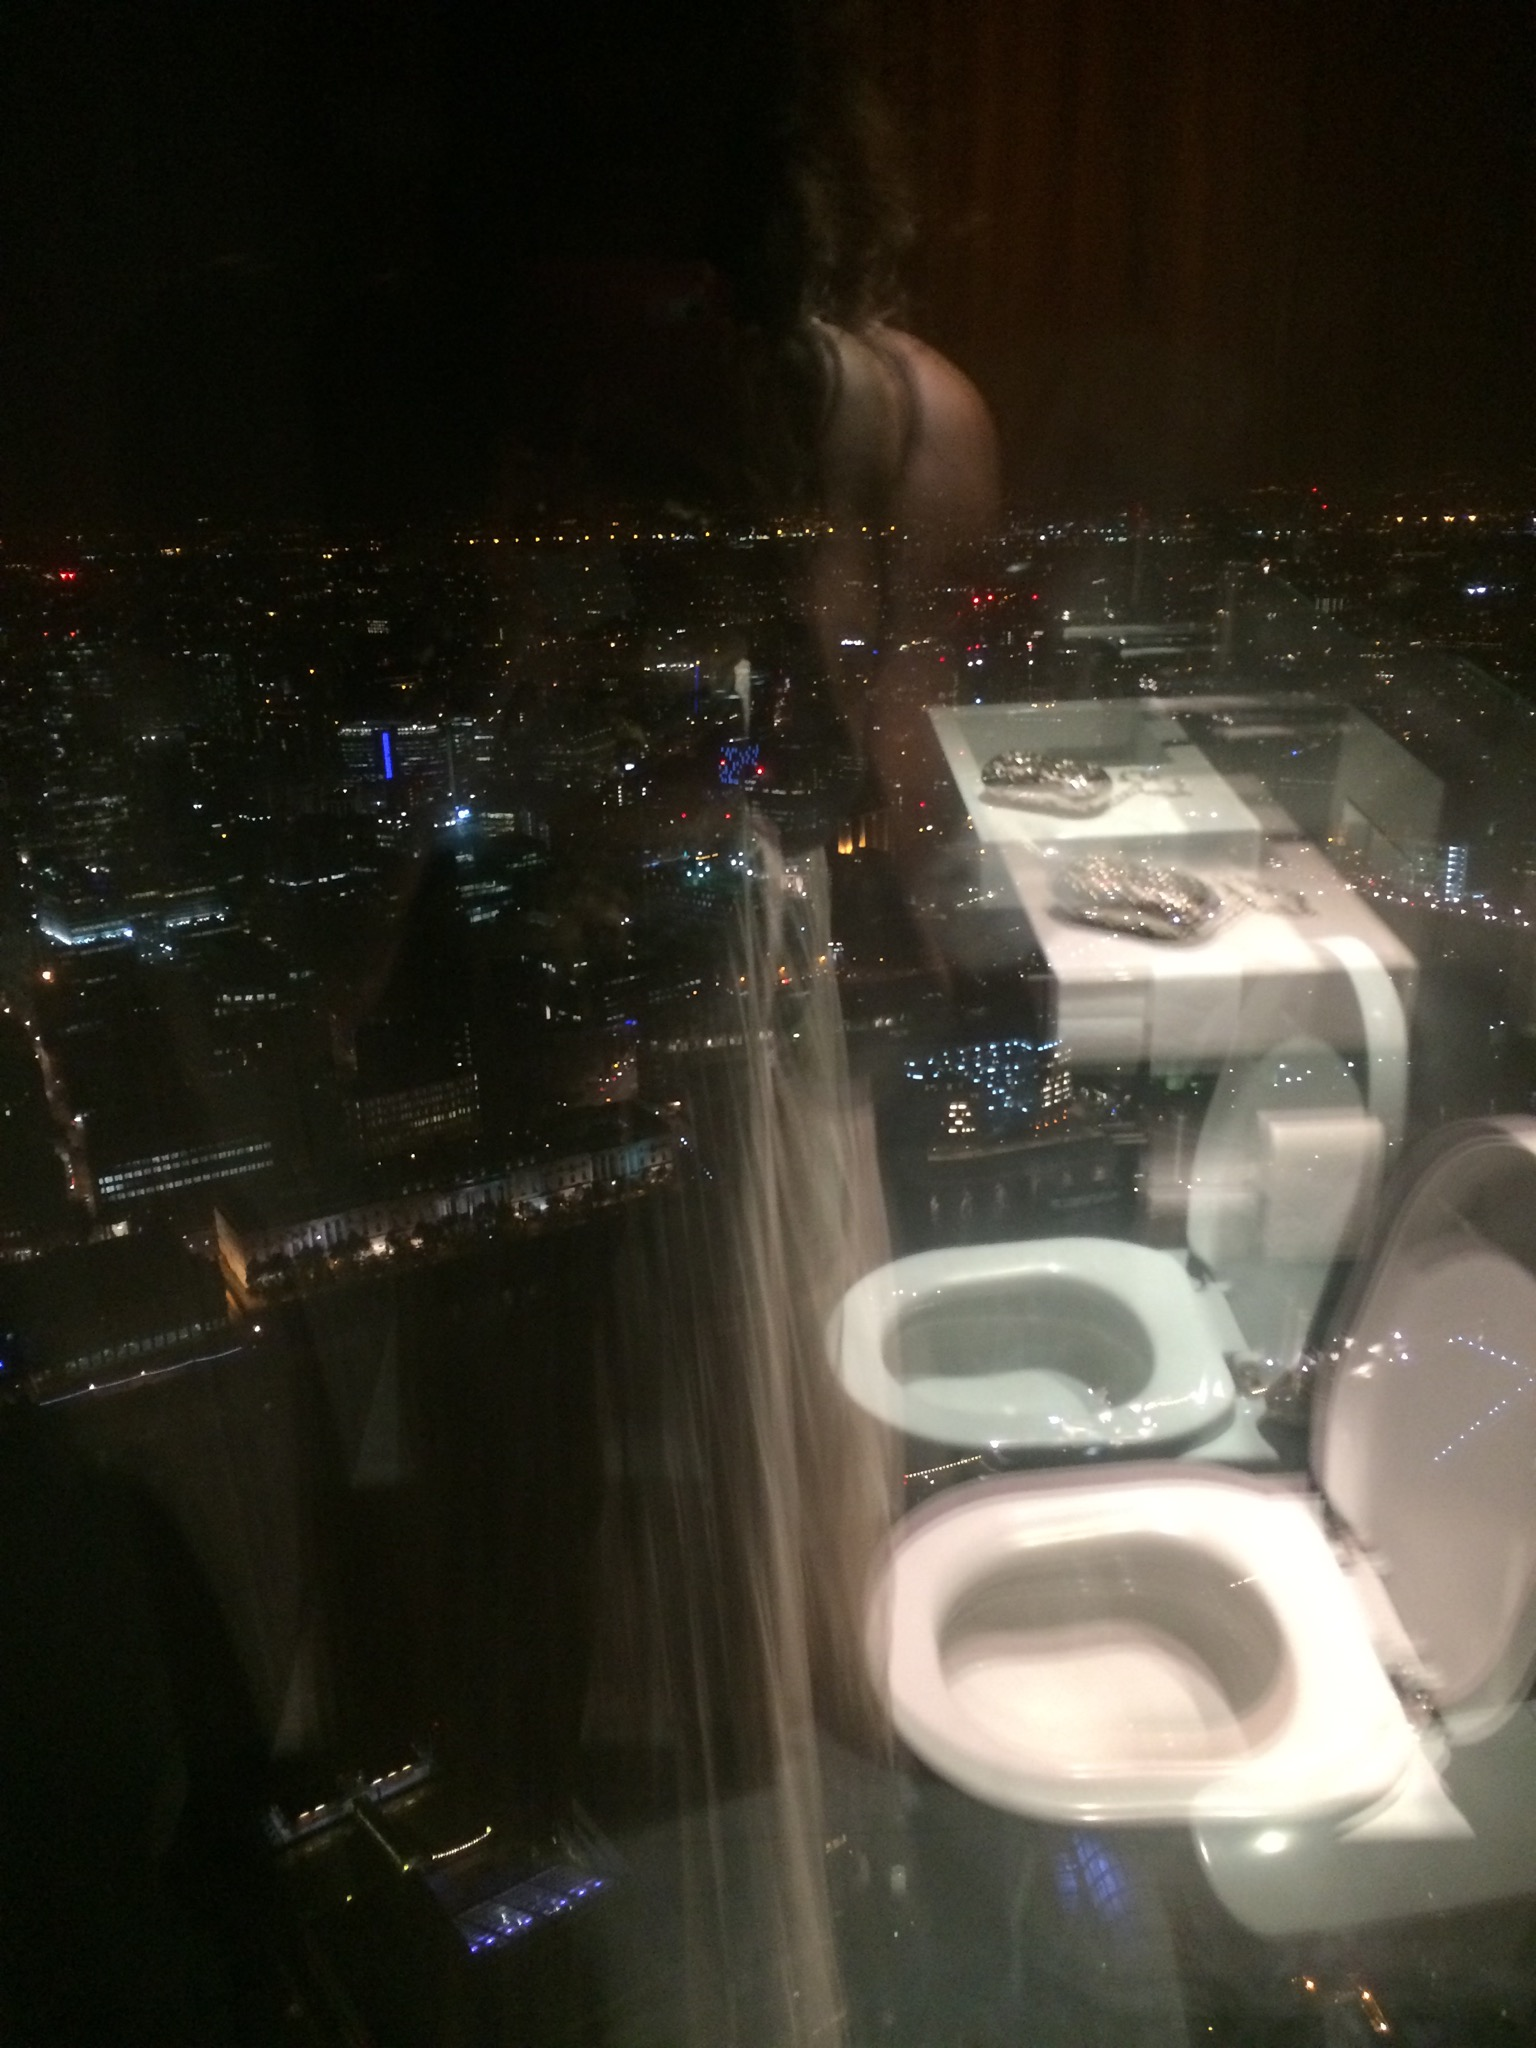 Even the toilets have incredible views